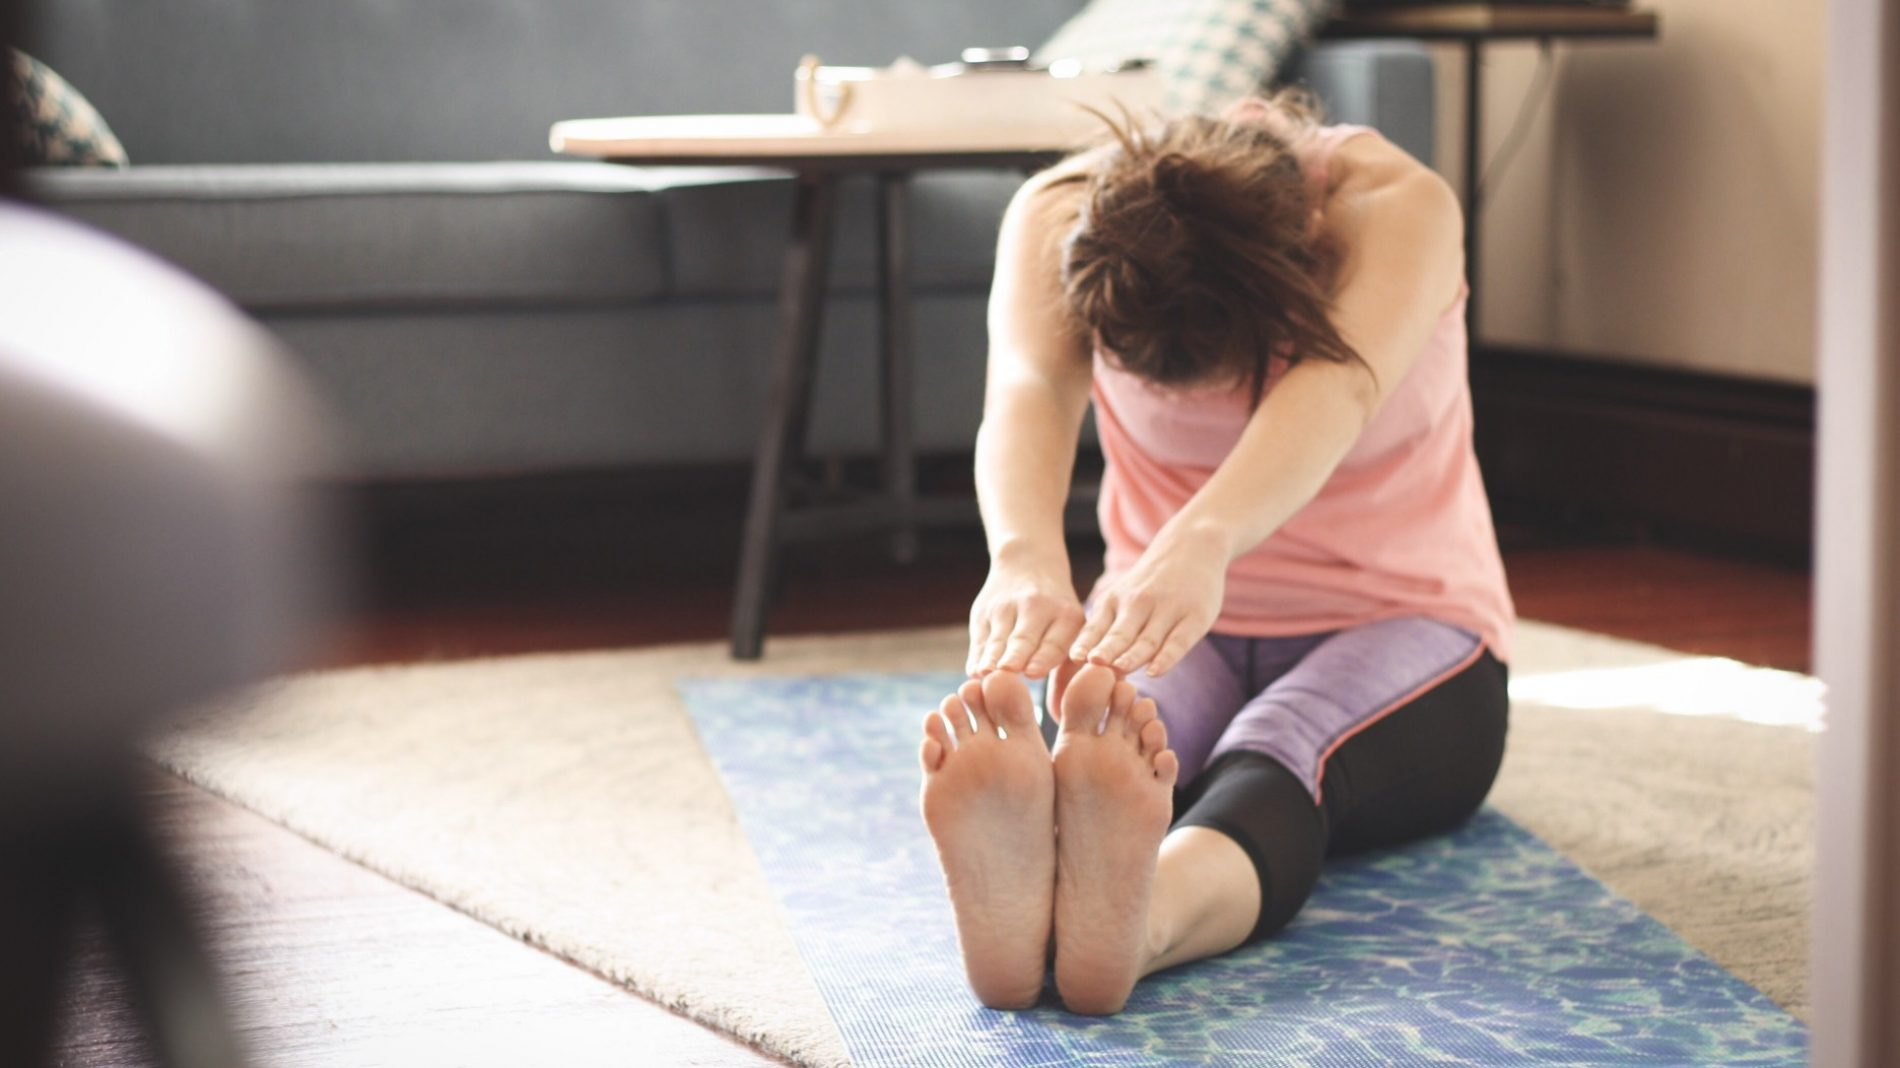 a-woman-stretching-on-a-yoga-mat-in-workout-gear-in-her-home_t20_Bla7vv